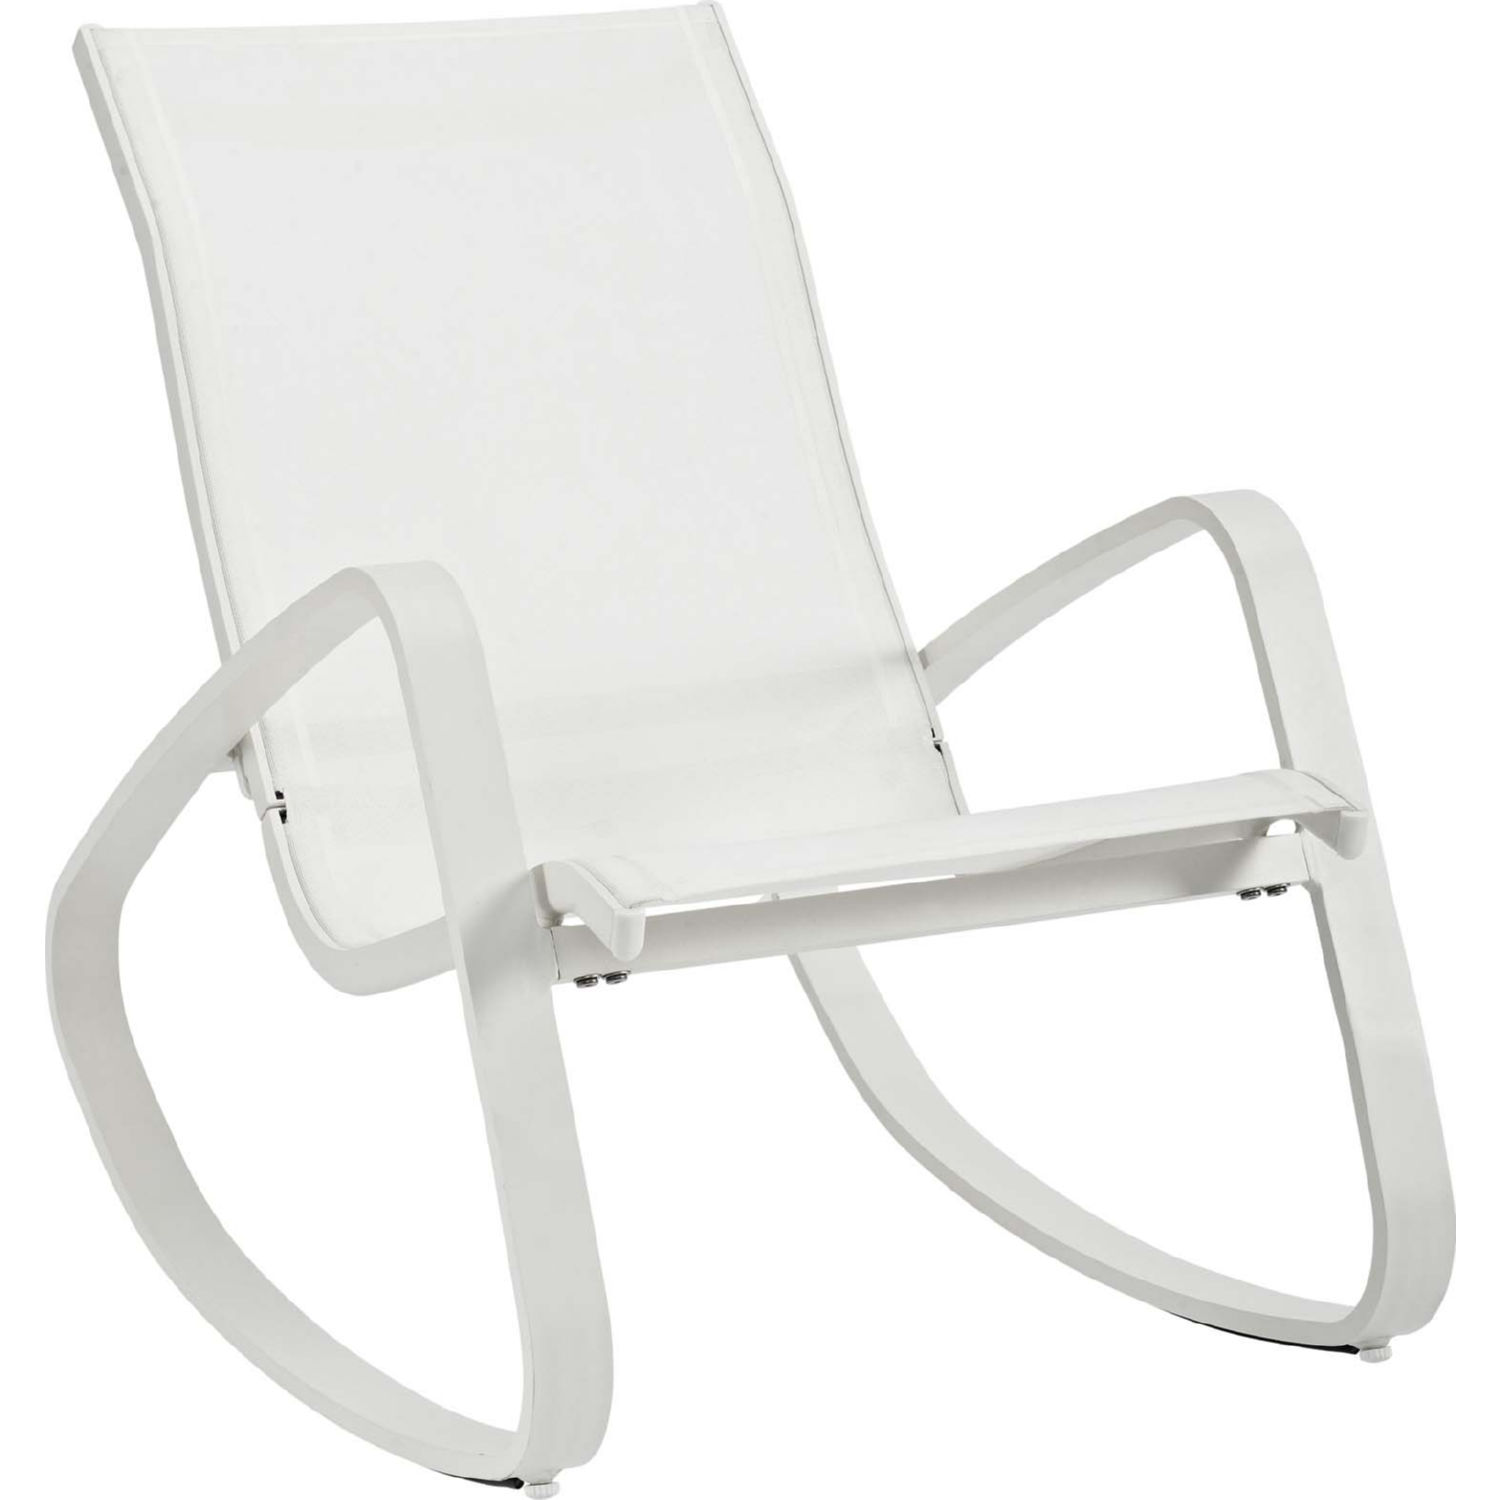 Modway Eei 3027 Whi Whi Traveler Rocking Outdoor Sling Chair In